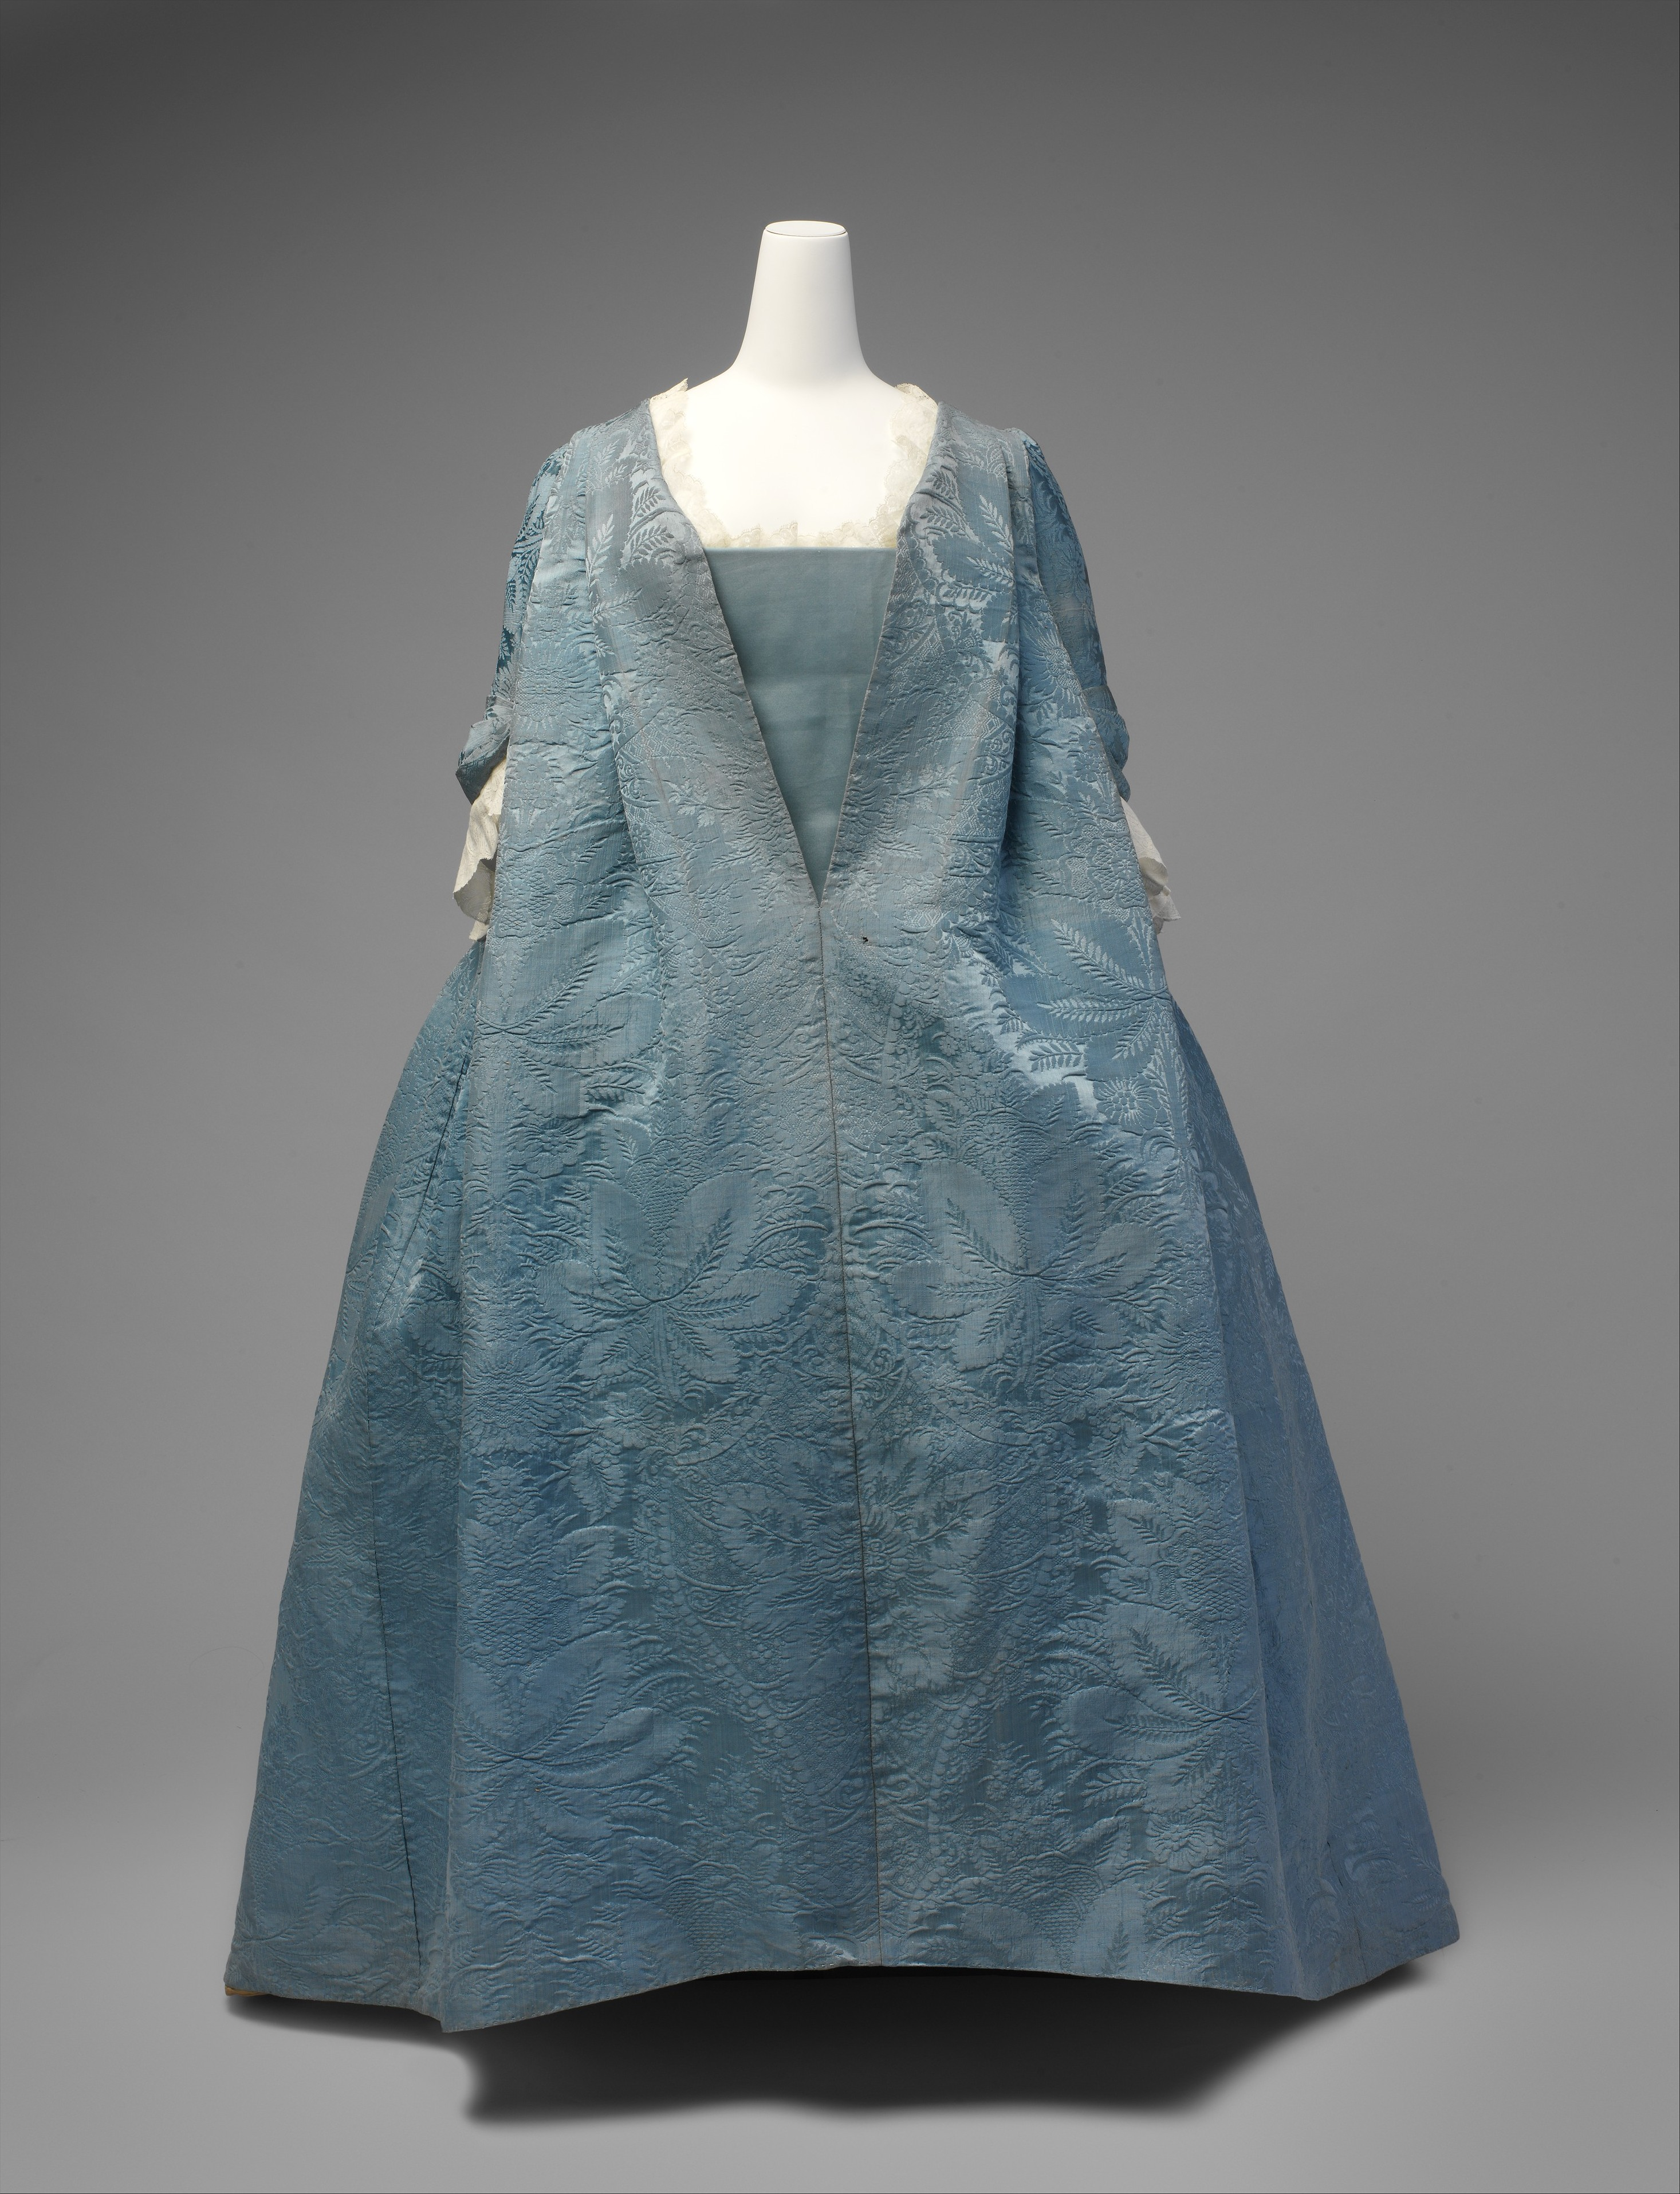 Extant Blue Silk Robe Volante. C. 1730. The Metropolitan Museum of Art, New York.